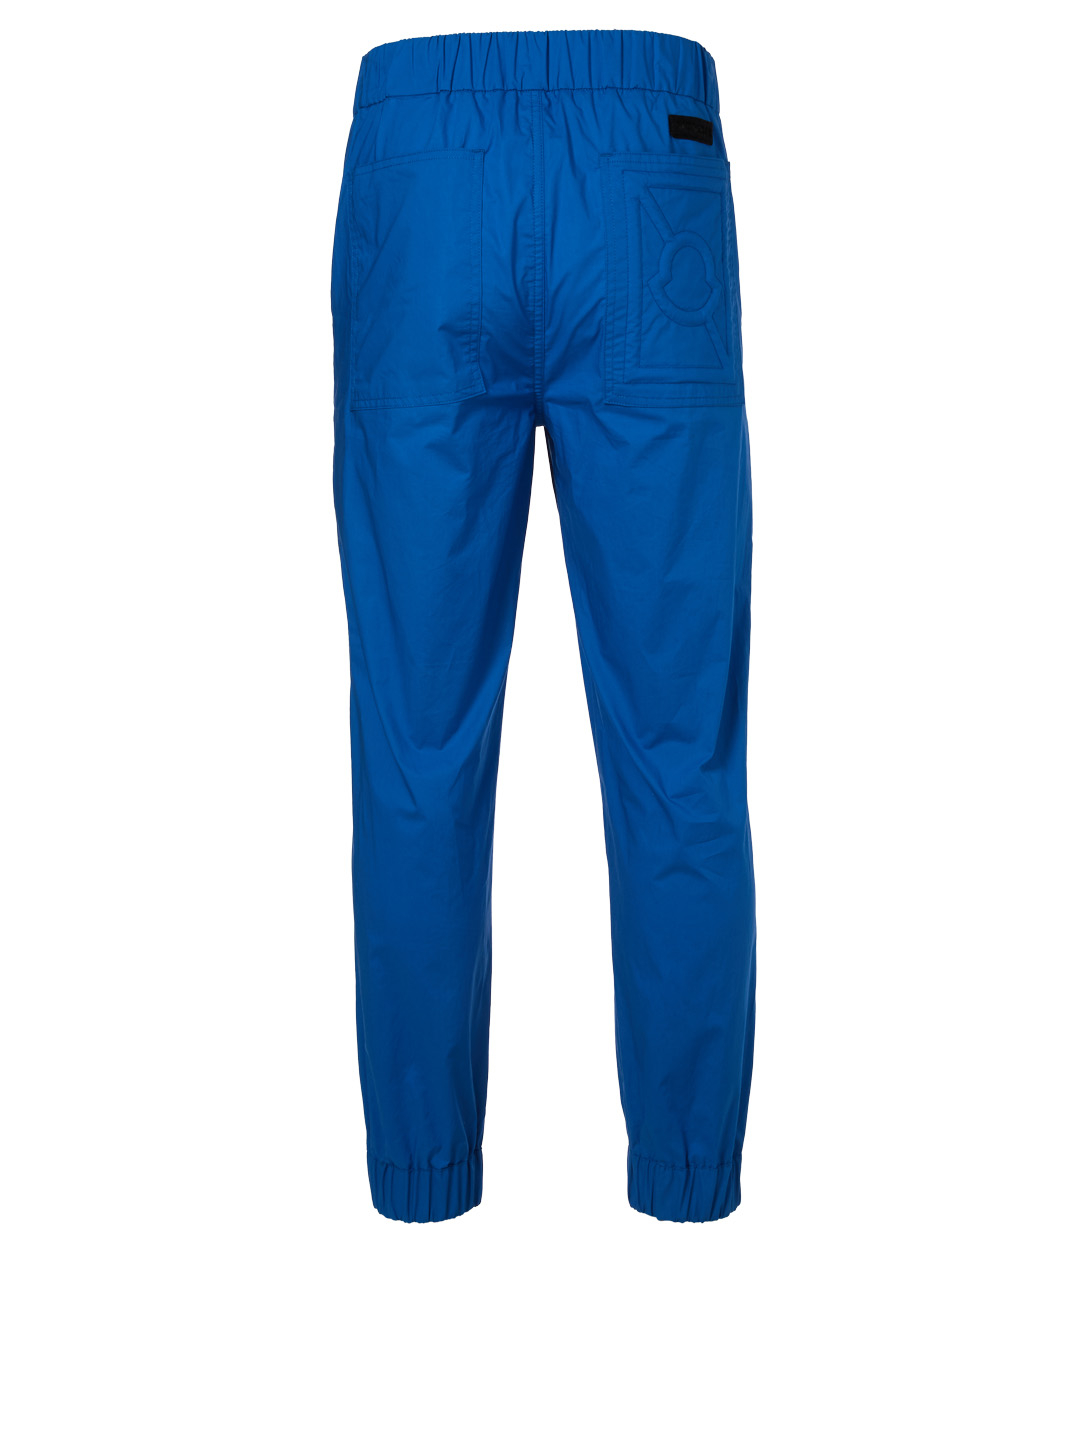 MONCLER GENIUS 5 Moncler x Craig Green Jogger Pants Men's Blue